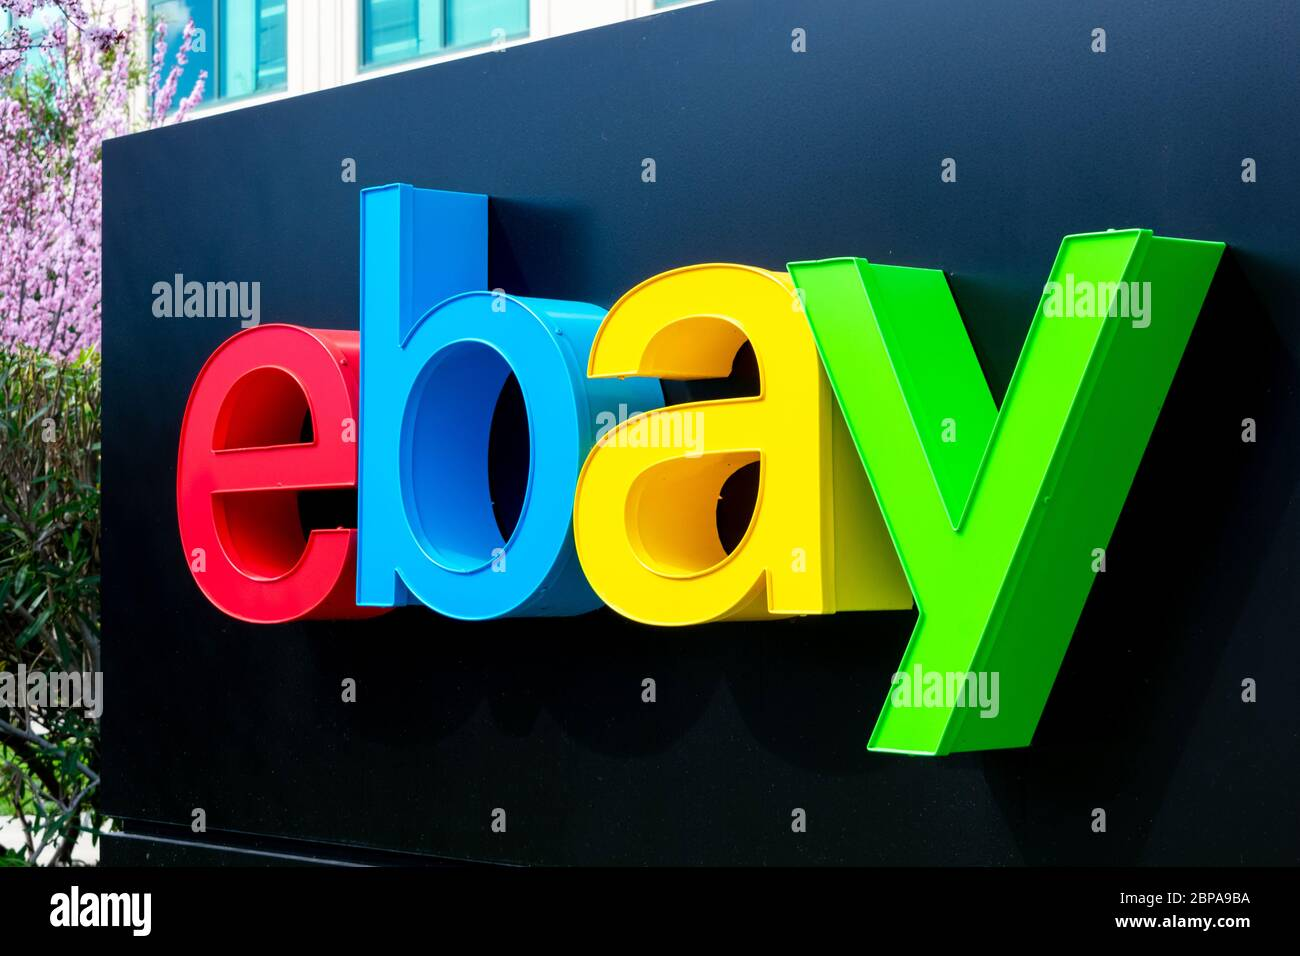 Ebay Inc High Resolution Stock Photography And Images Alamy